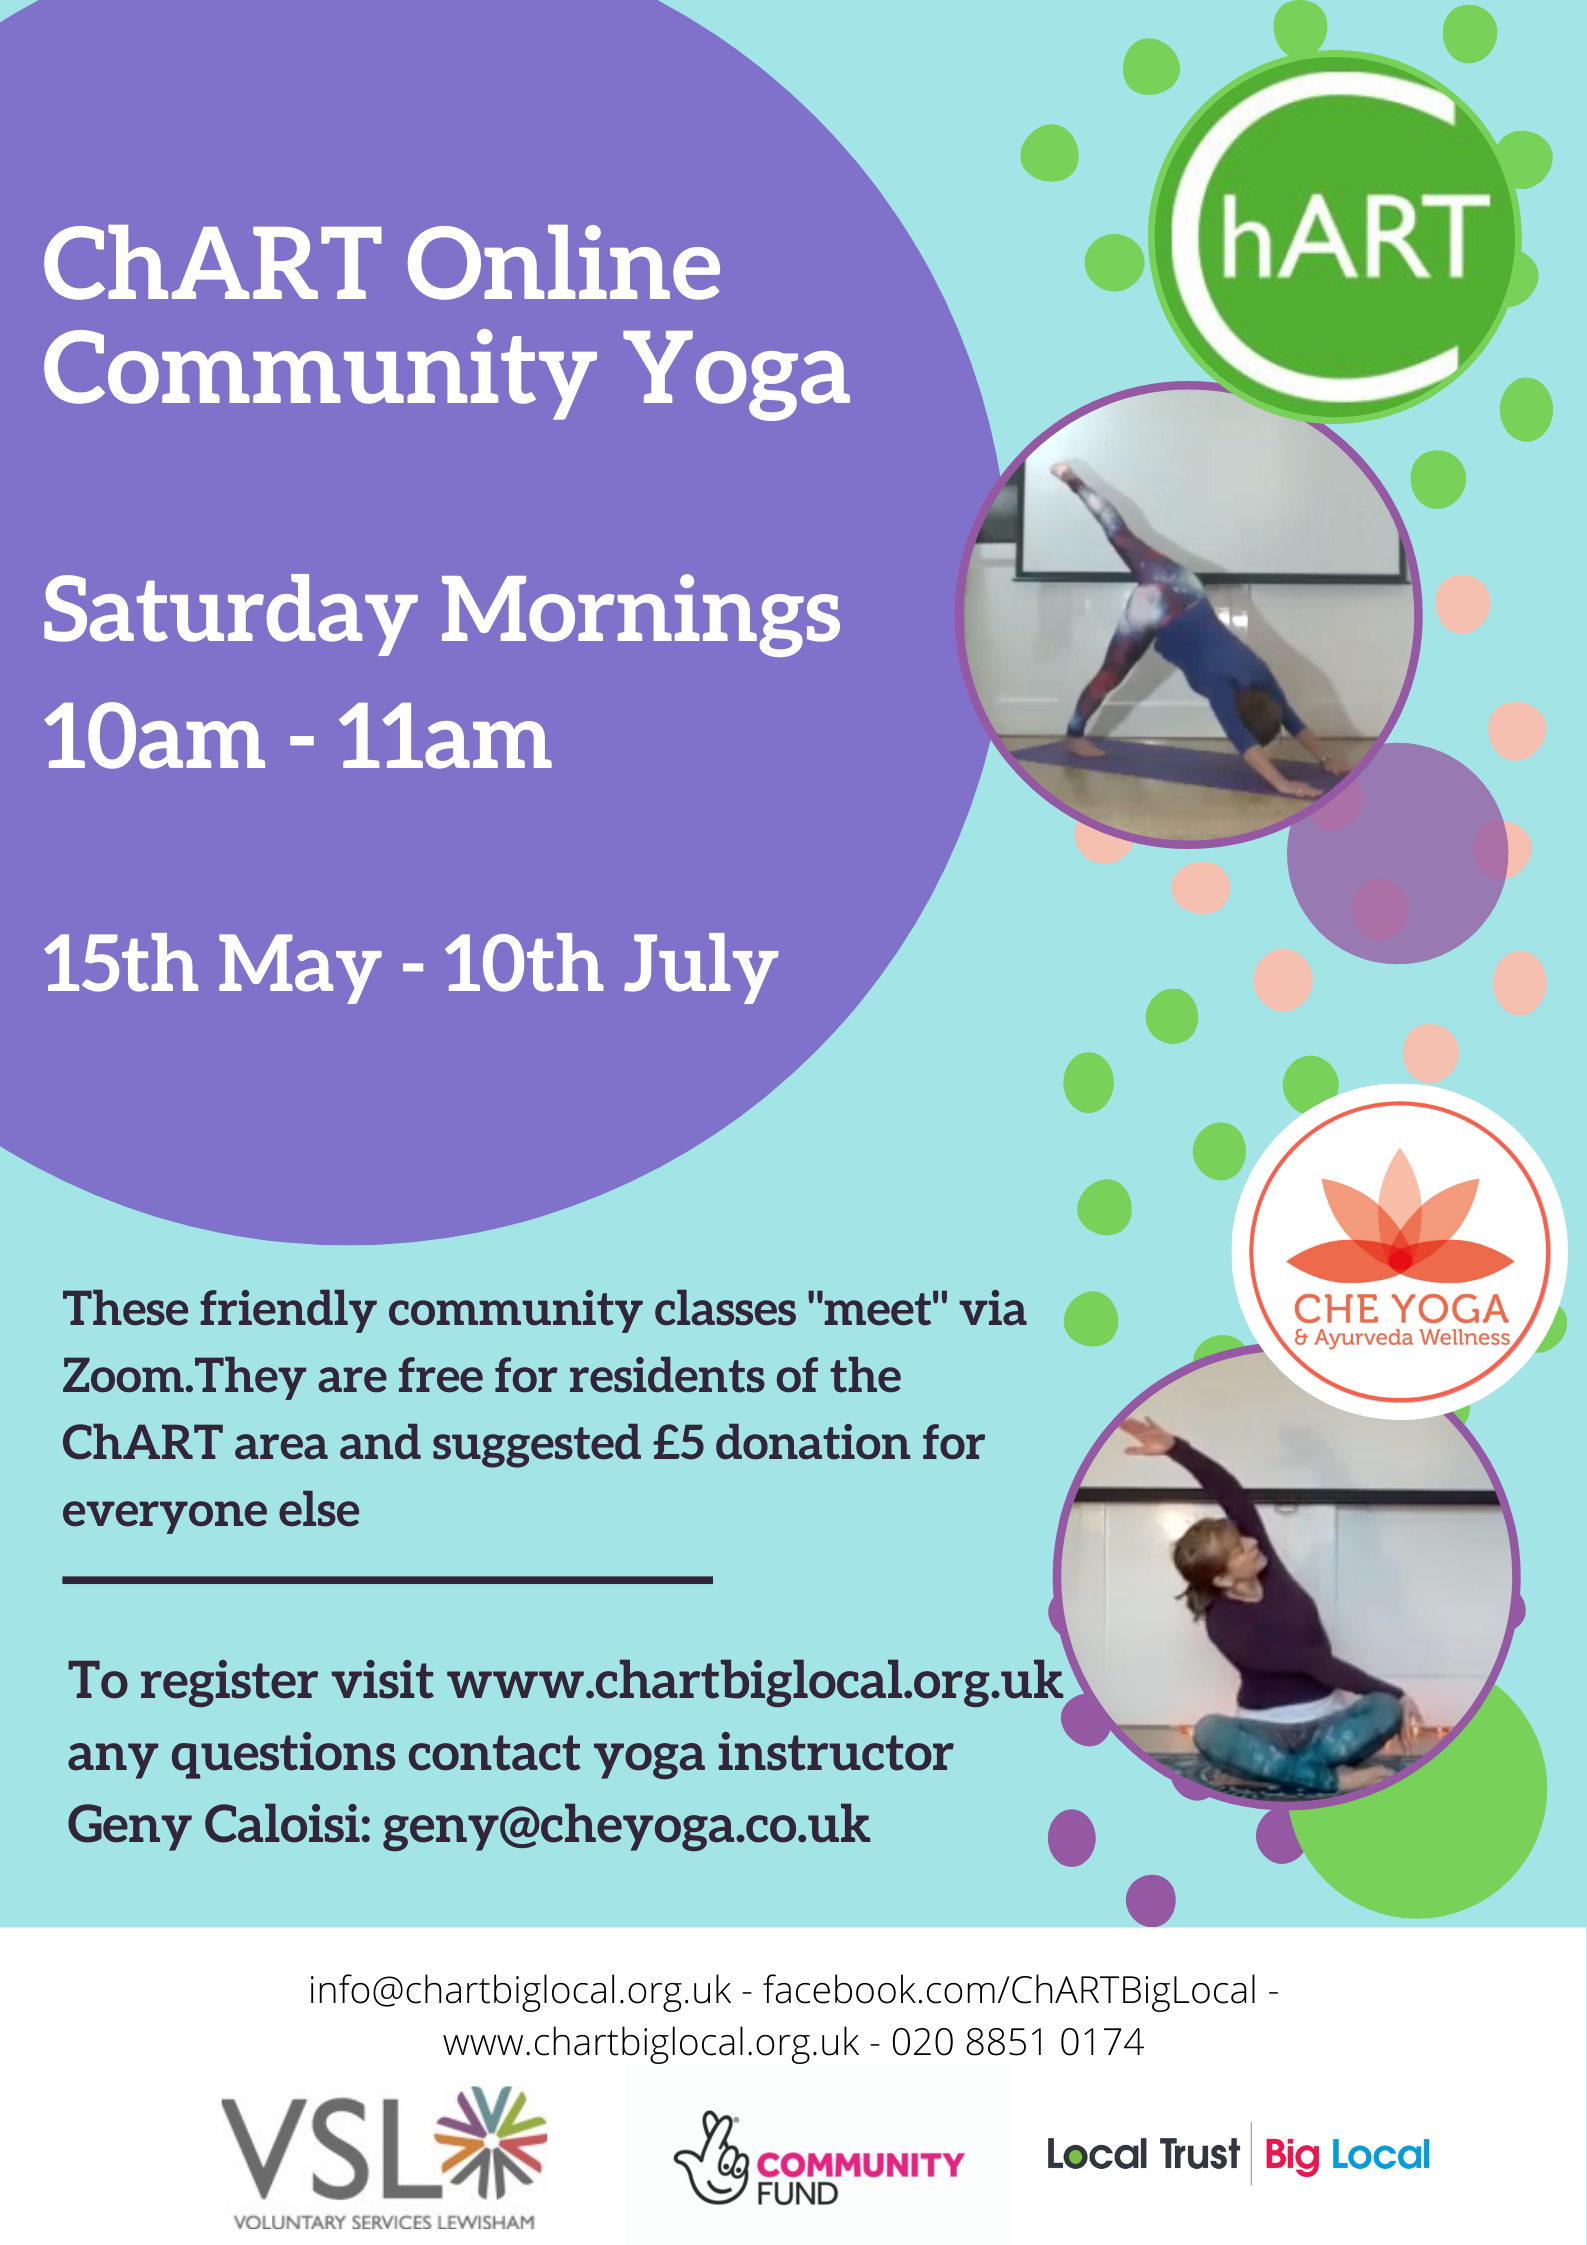 ChART Online Community Yoga, Saturday Mornings 10am - 11am, for 9 weeks 15th May - 10th July